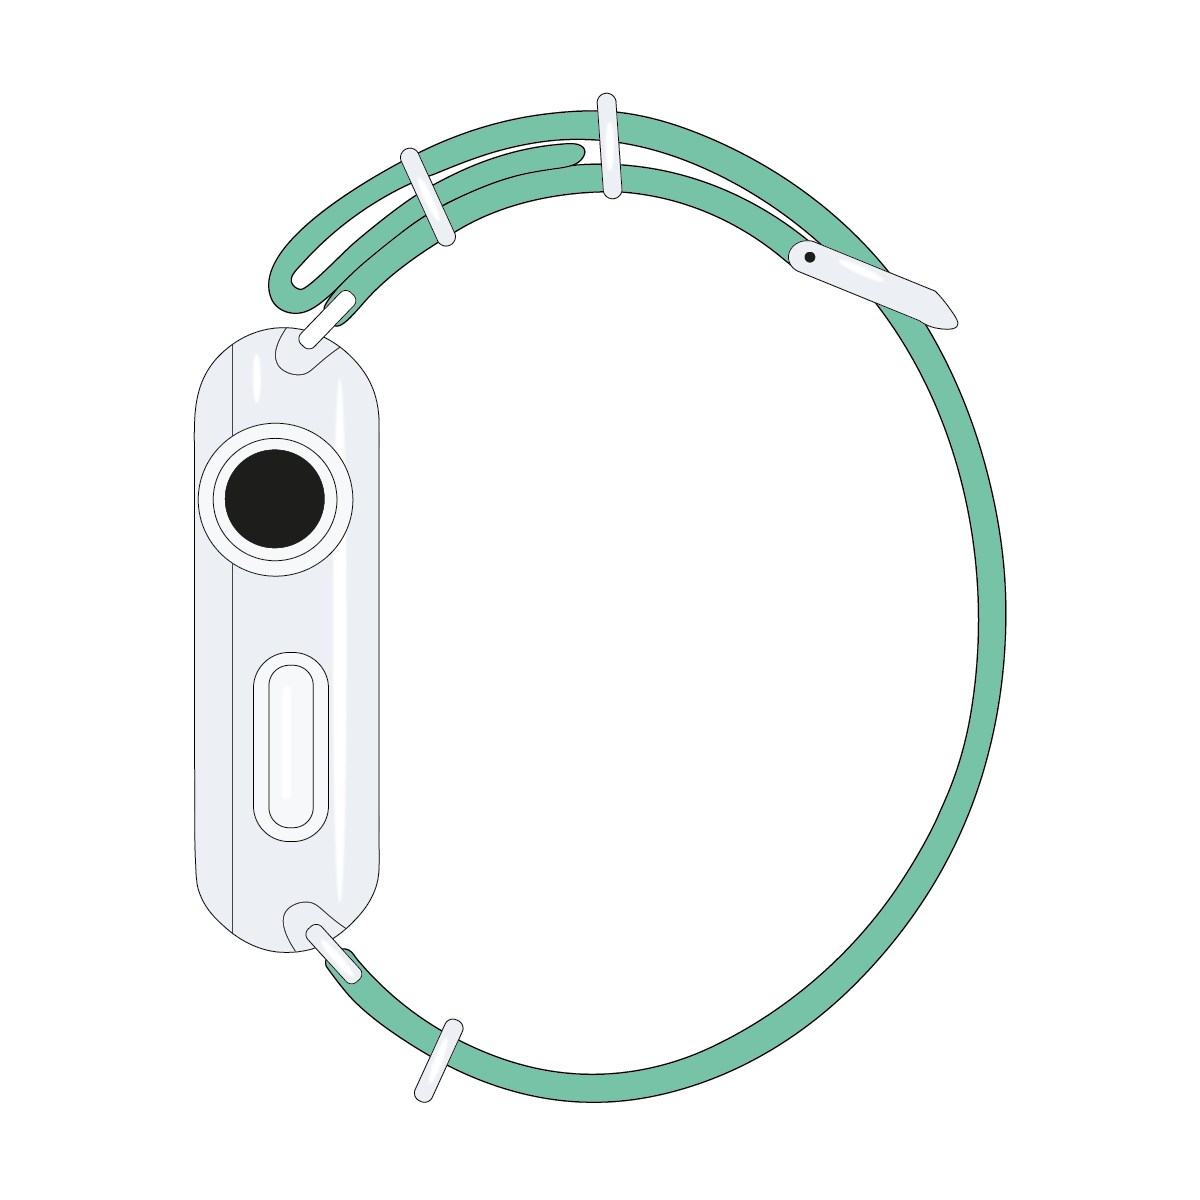 Correa para Apple Watch de nailon NATO en verde claro/blanco | Roobaya – Bild 4